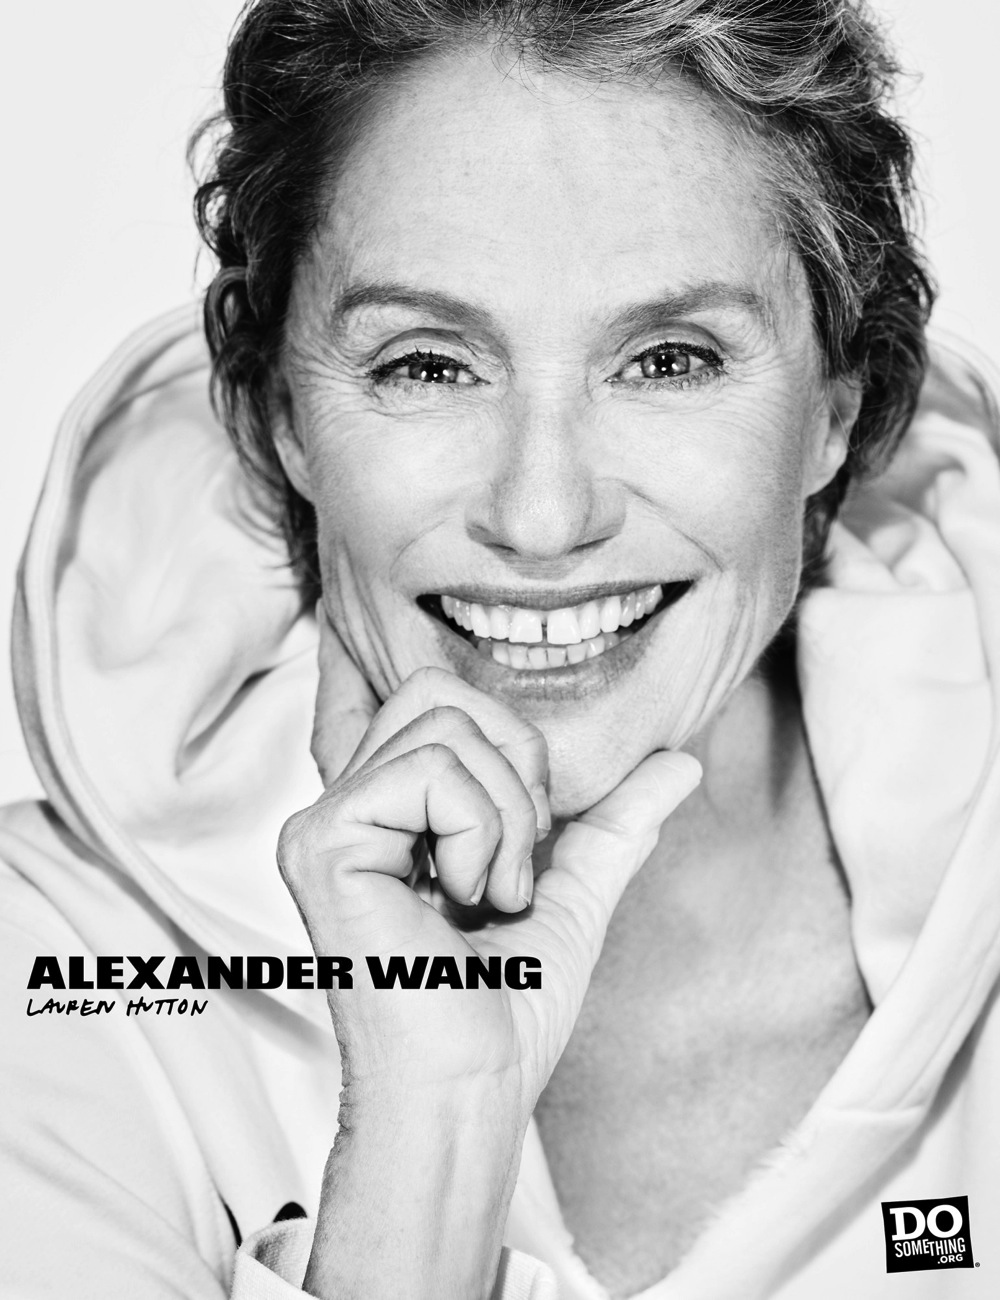 Lauren Hutton wears Alexander Wang x DoSomething